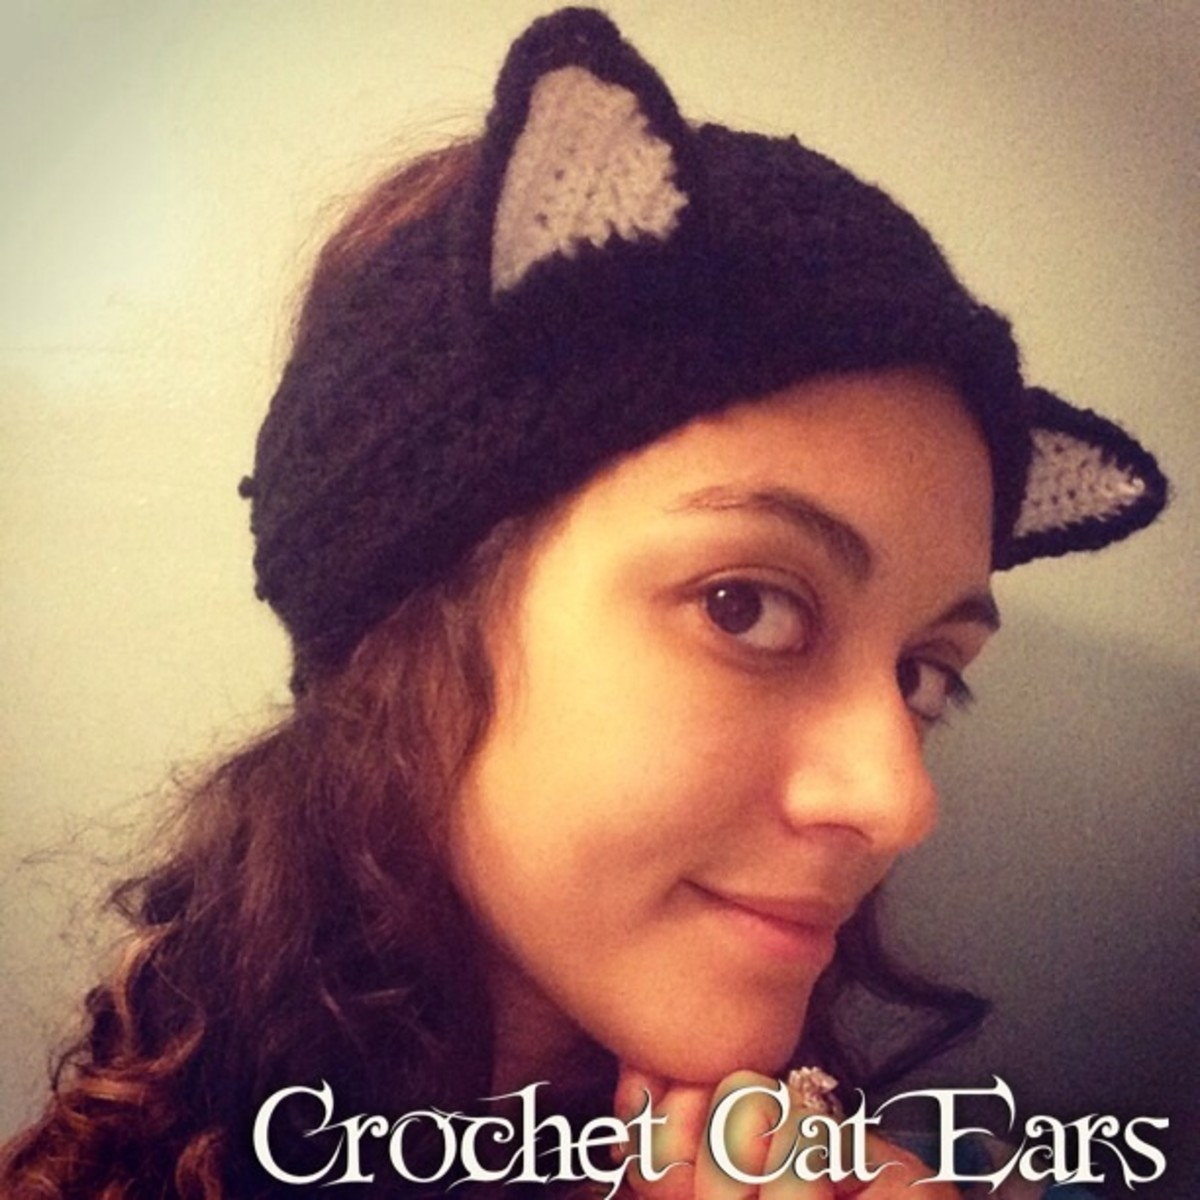 How to Crochet Cat Ears Headband